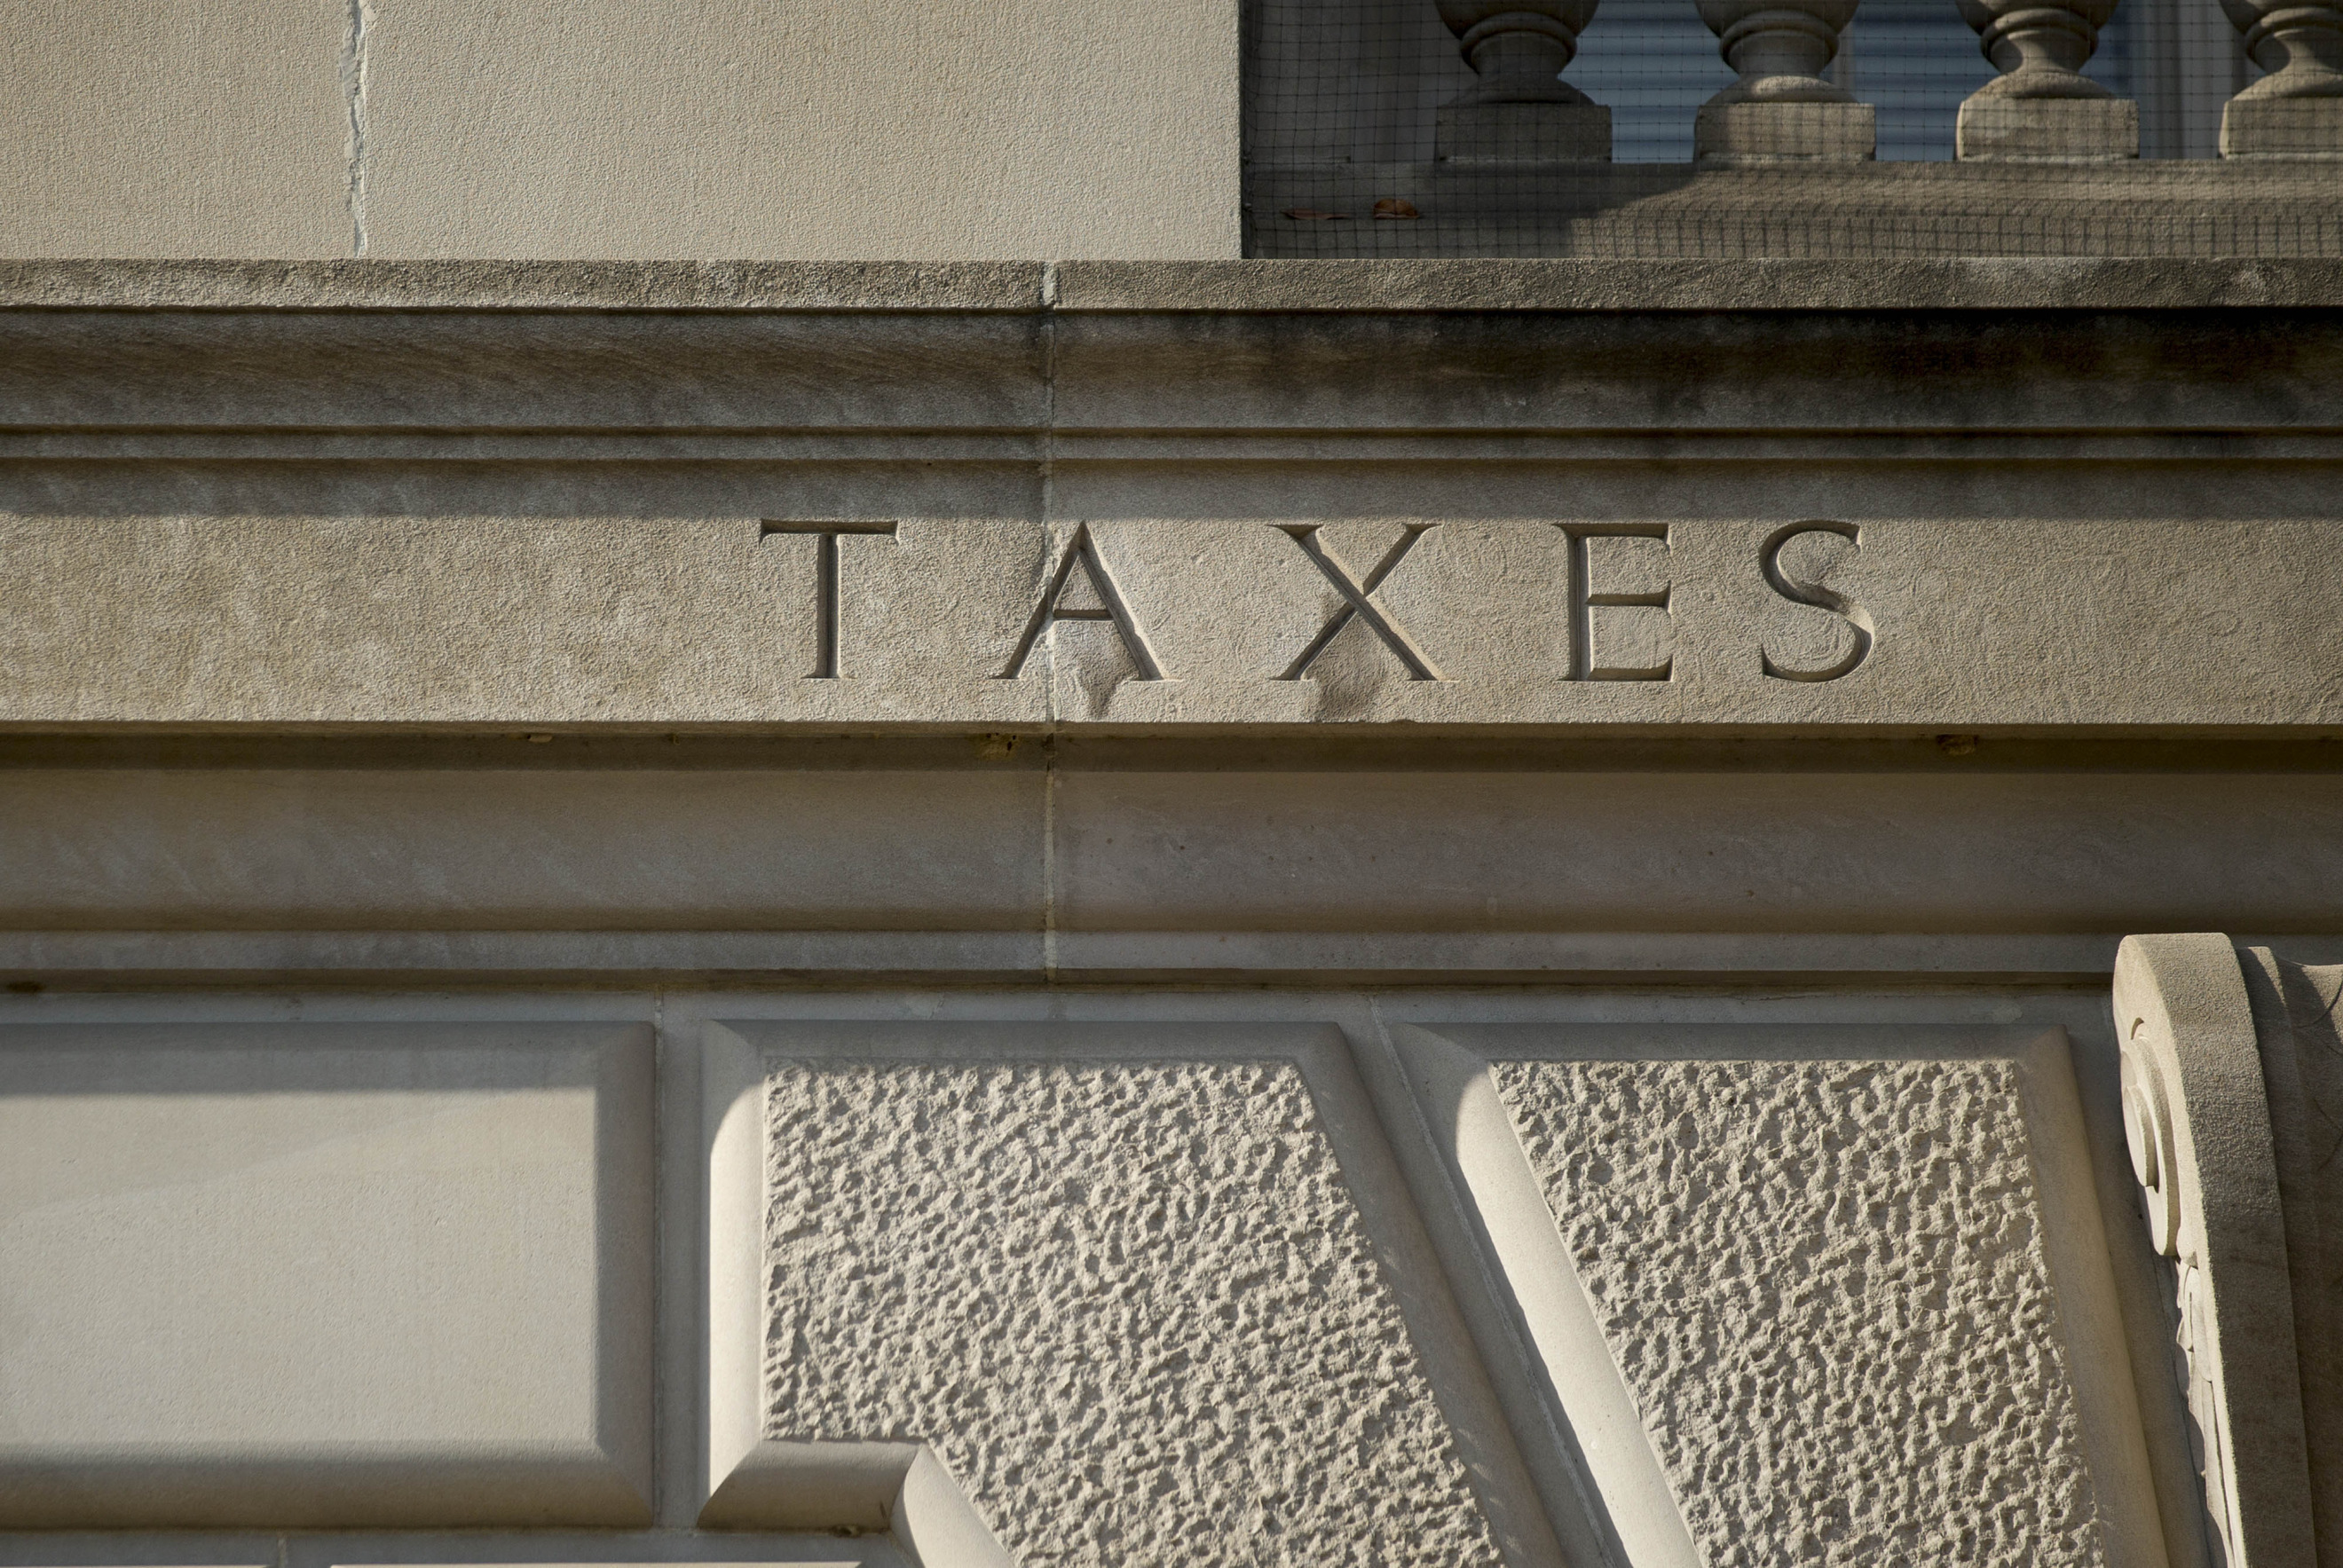 Conflicting 1099-B tax forms create 'nightmares' for some